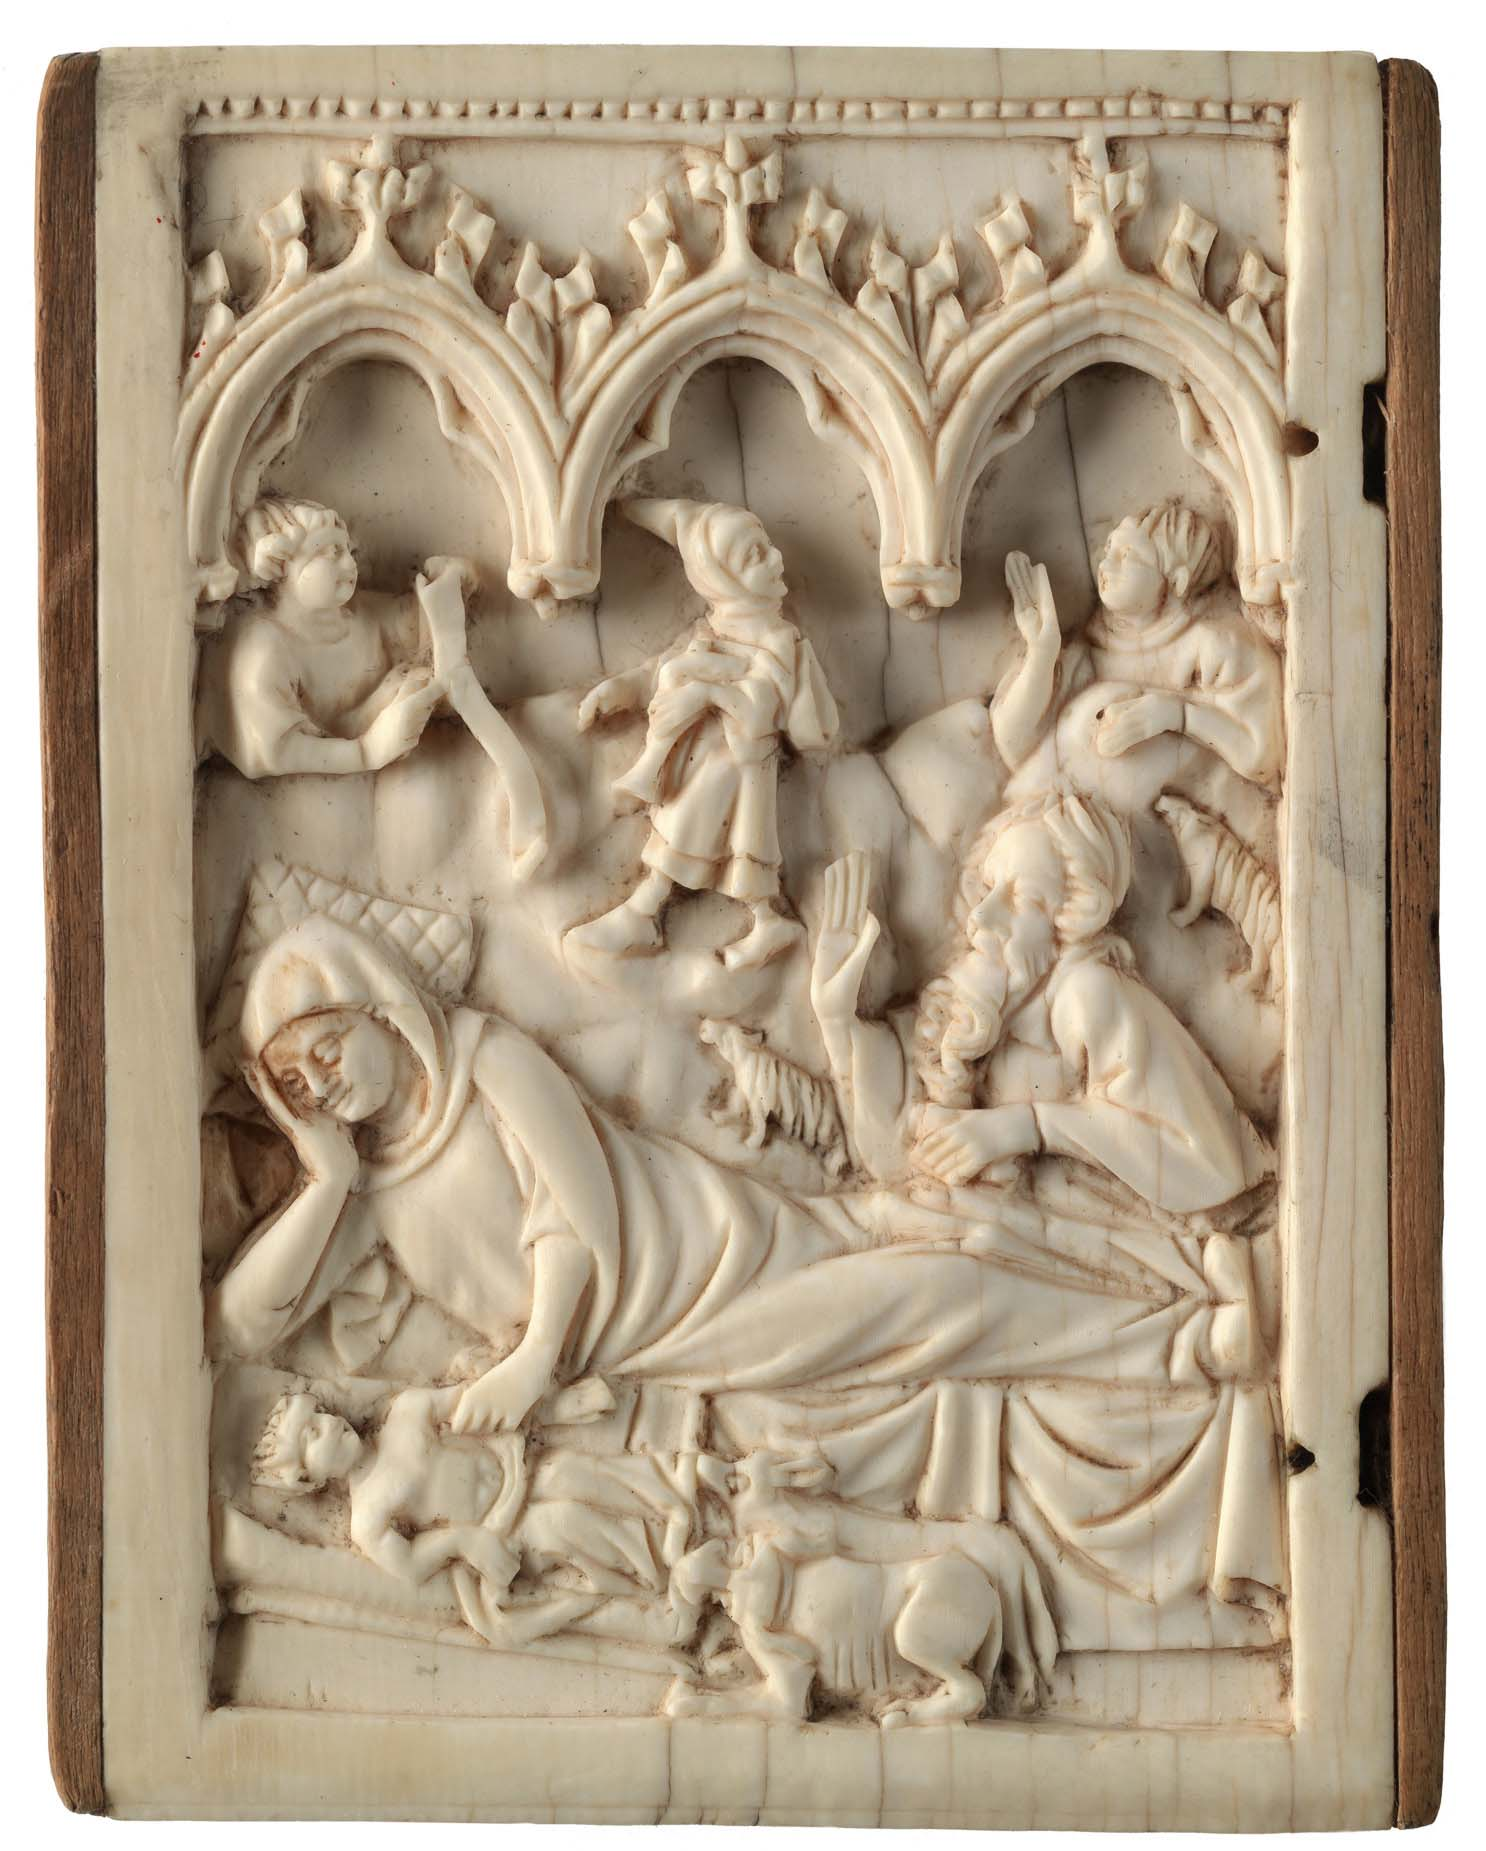 French. The Nativity, 15th century. Ivory, 3 1/8 x 2 1/4 in. Bequest of Frank Jewett Mather, Jr., Class of 1889, 57.25